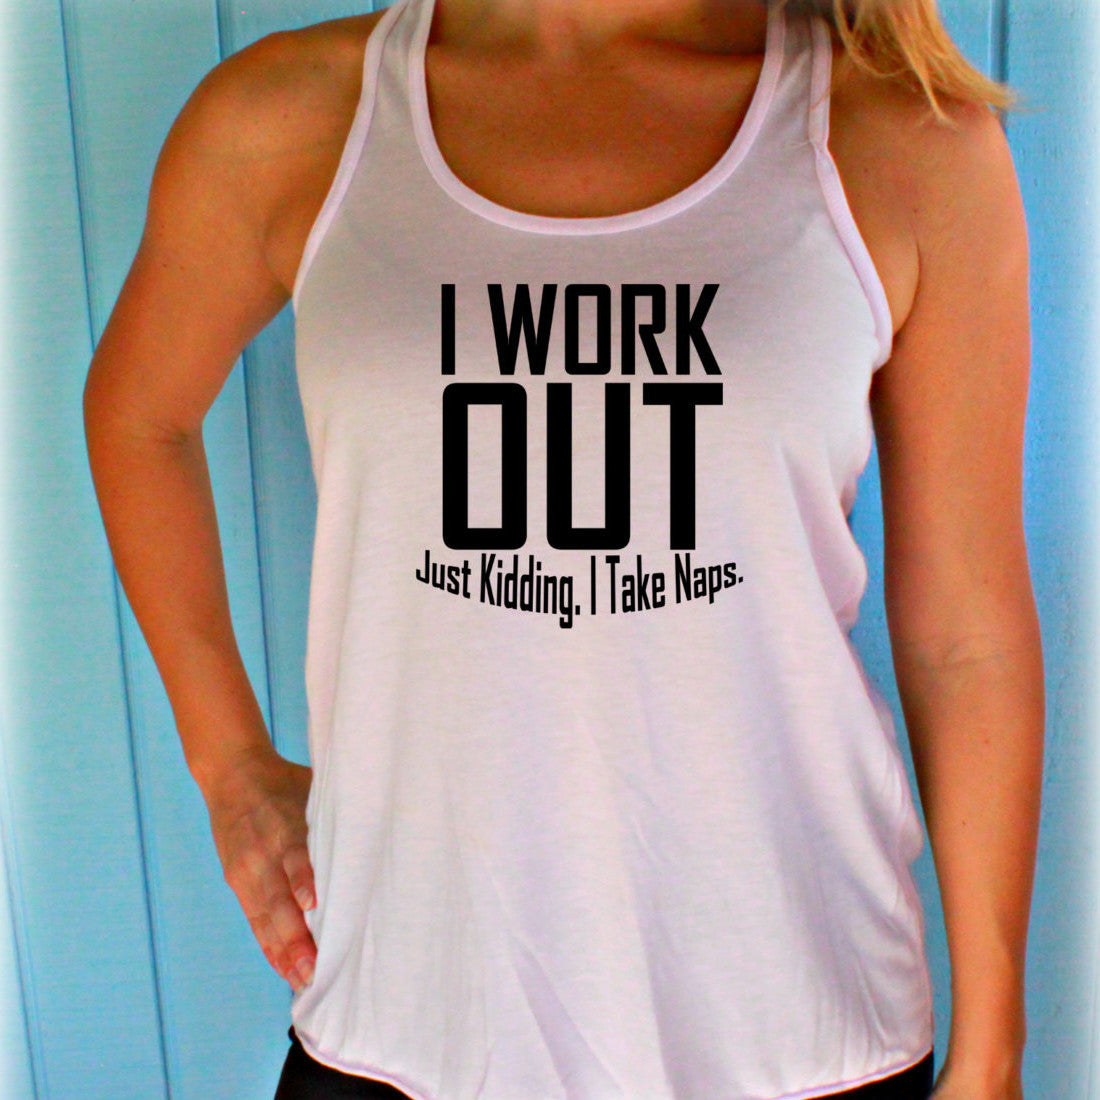 Womens Motivational Workout Tank Top. Fitness Motivation. I Workout. Just Kidding I Take Naps. Workout Clothing.